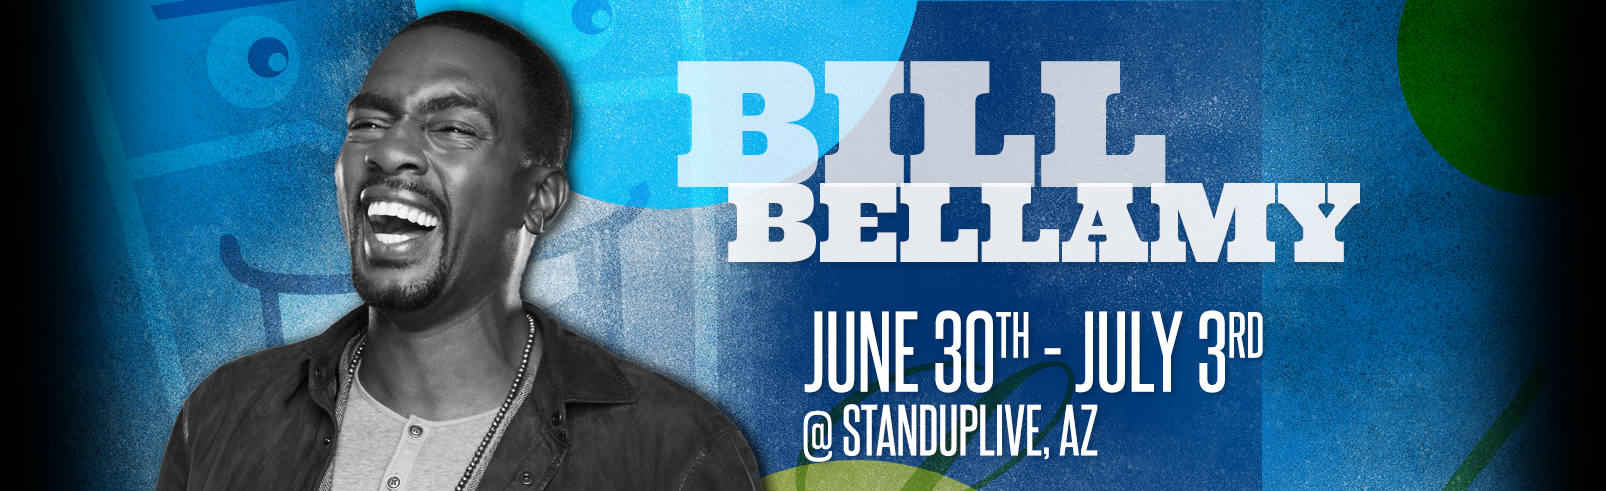 Bill Bellamy @ StandUpLive